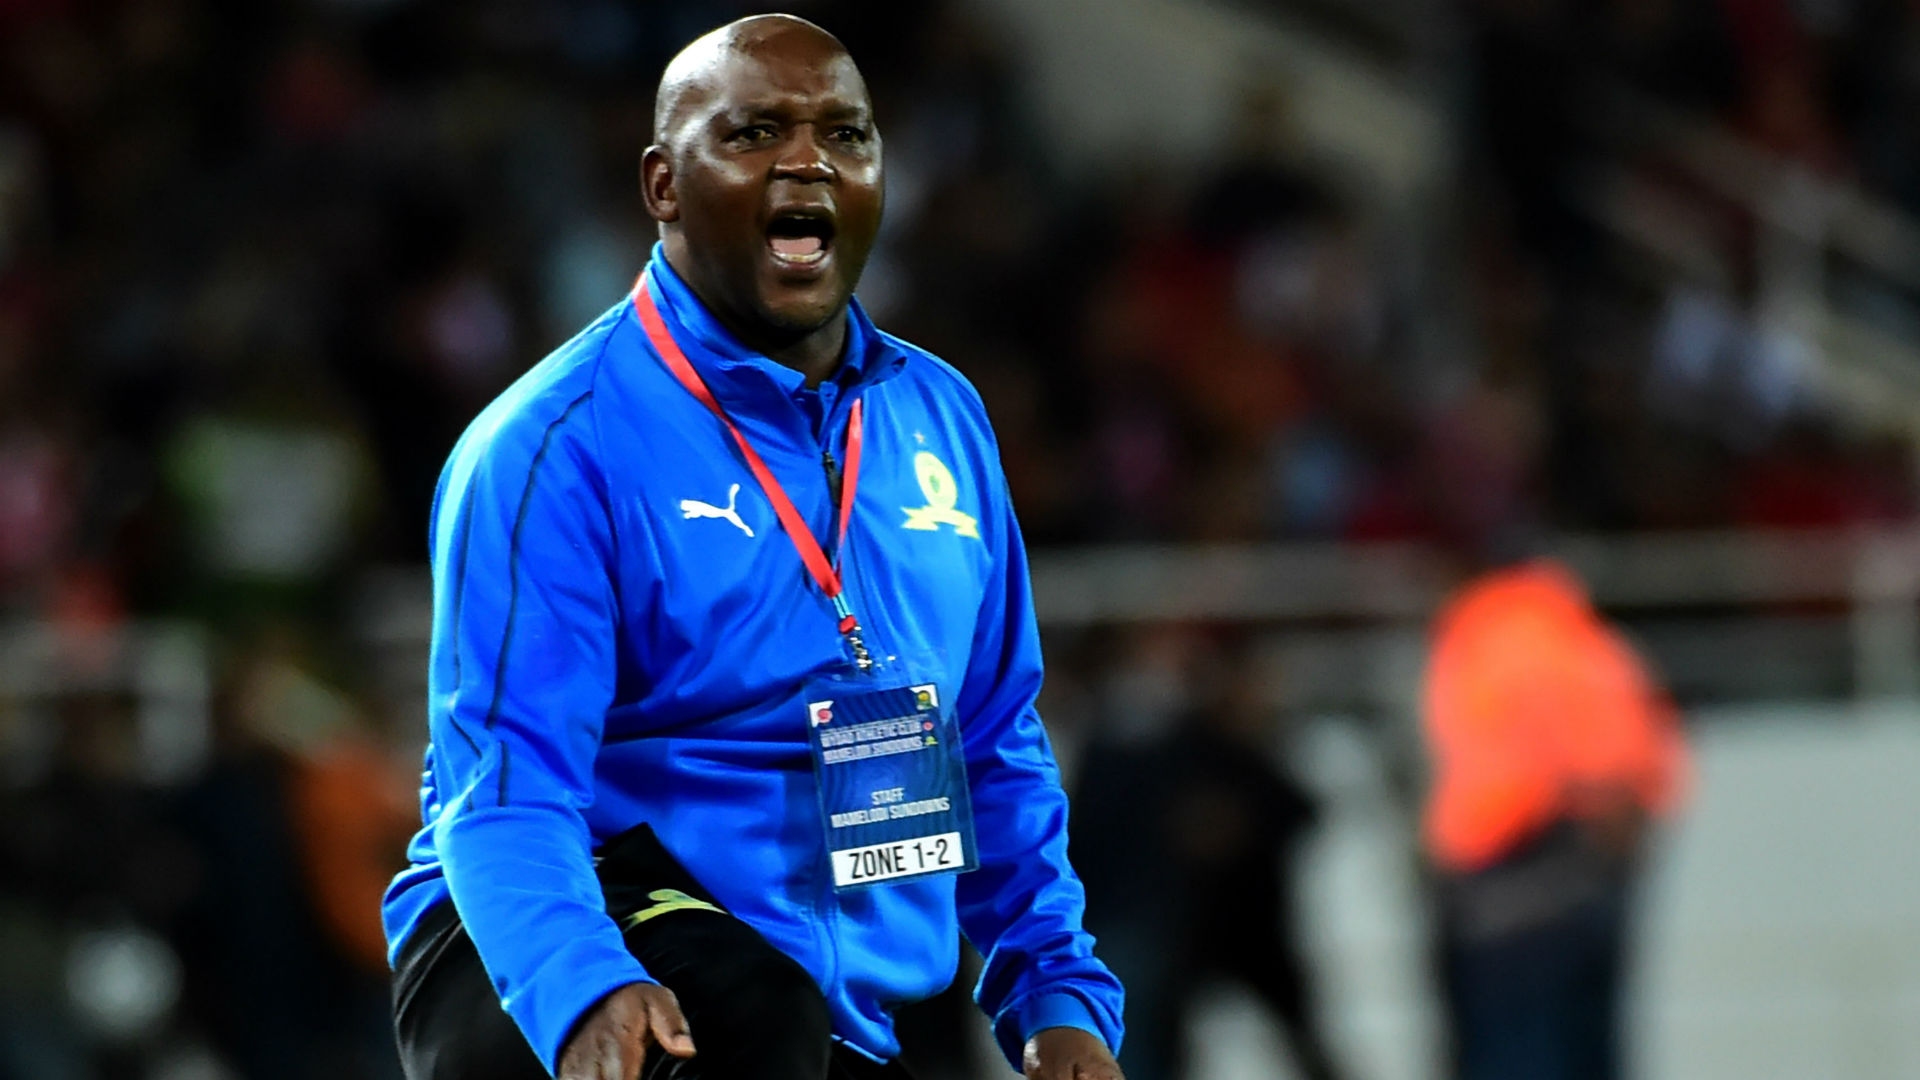 Ebola outbreak forces Sundowns to change pre-season plans